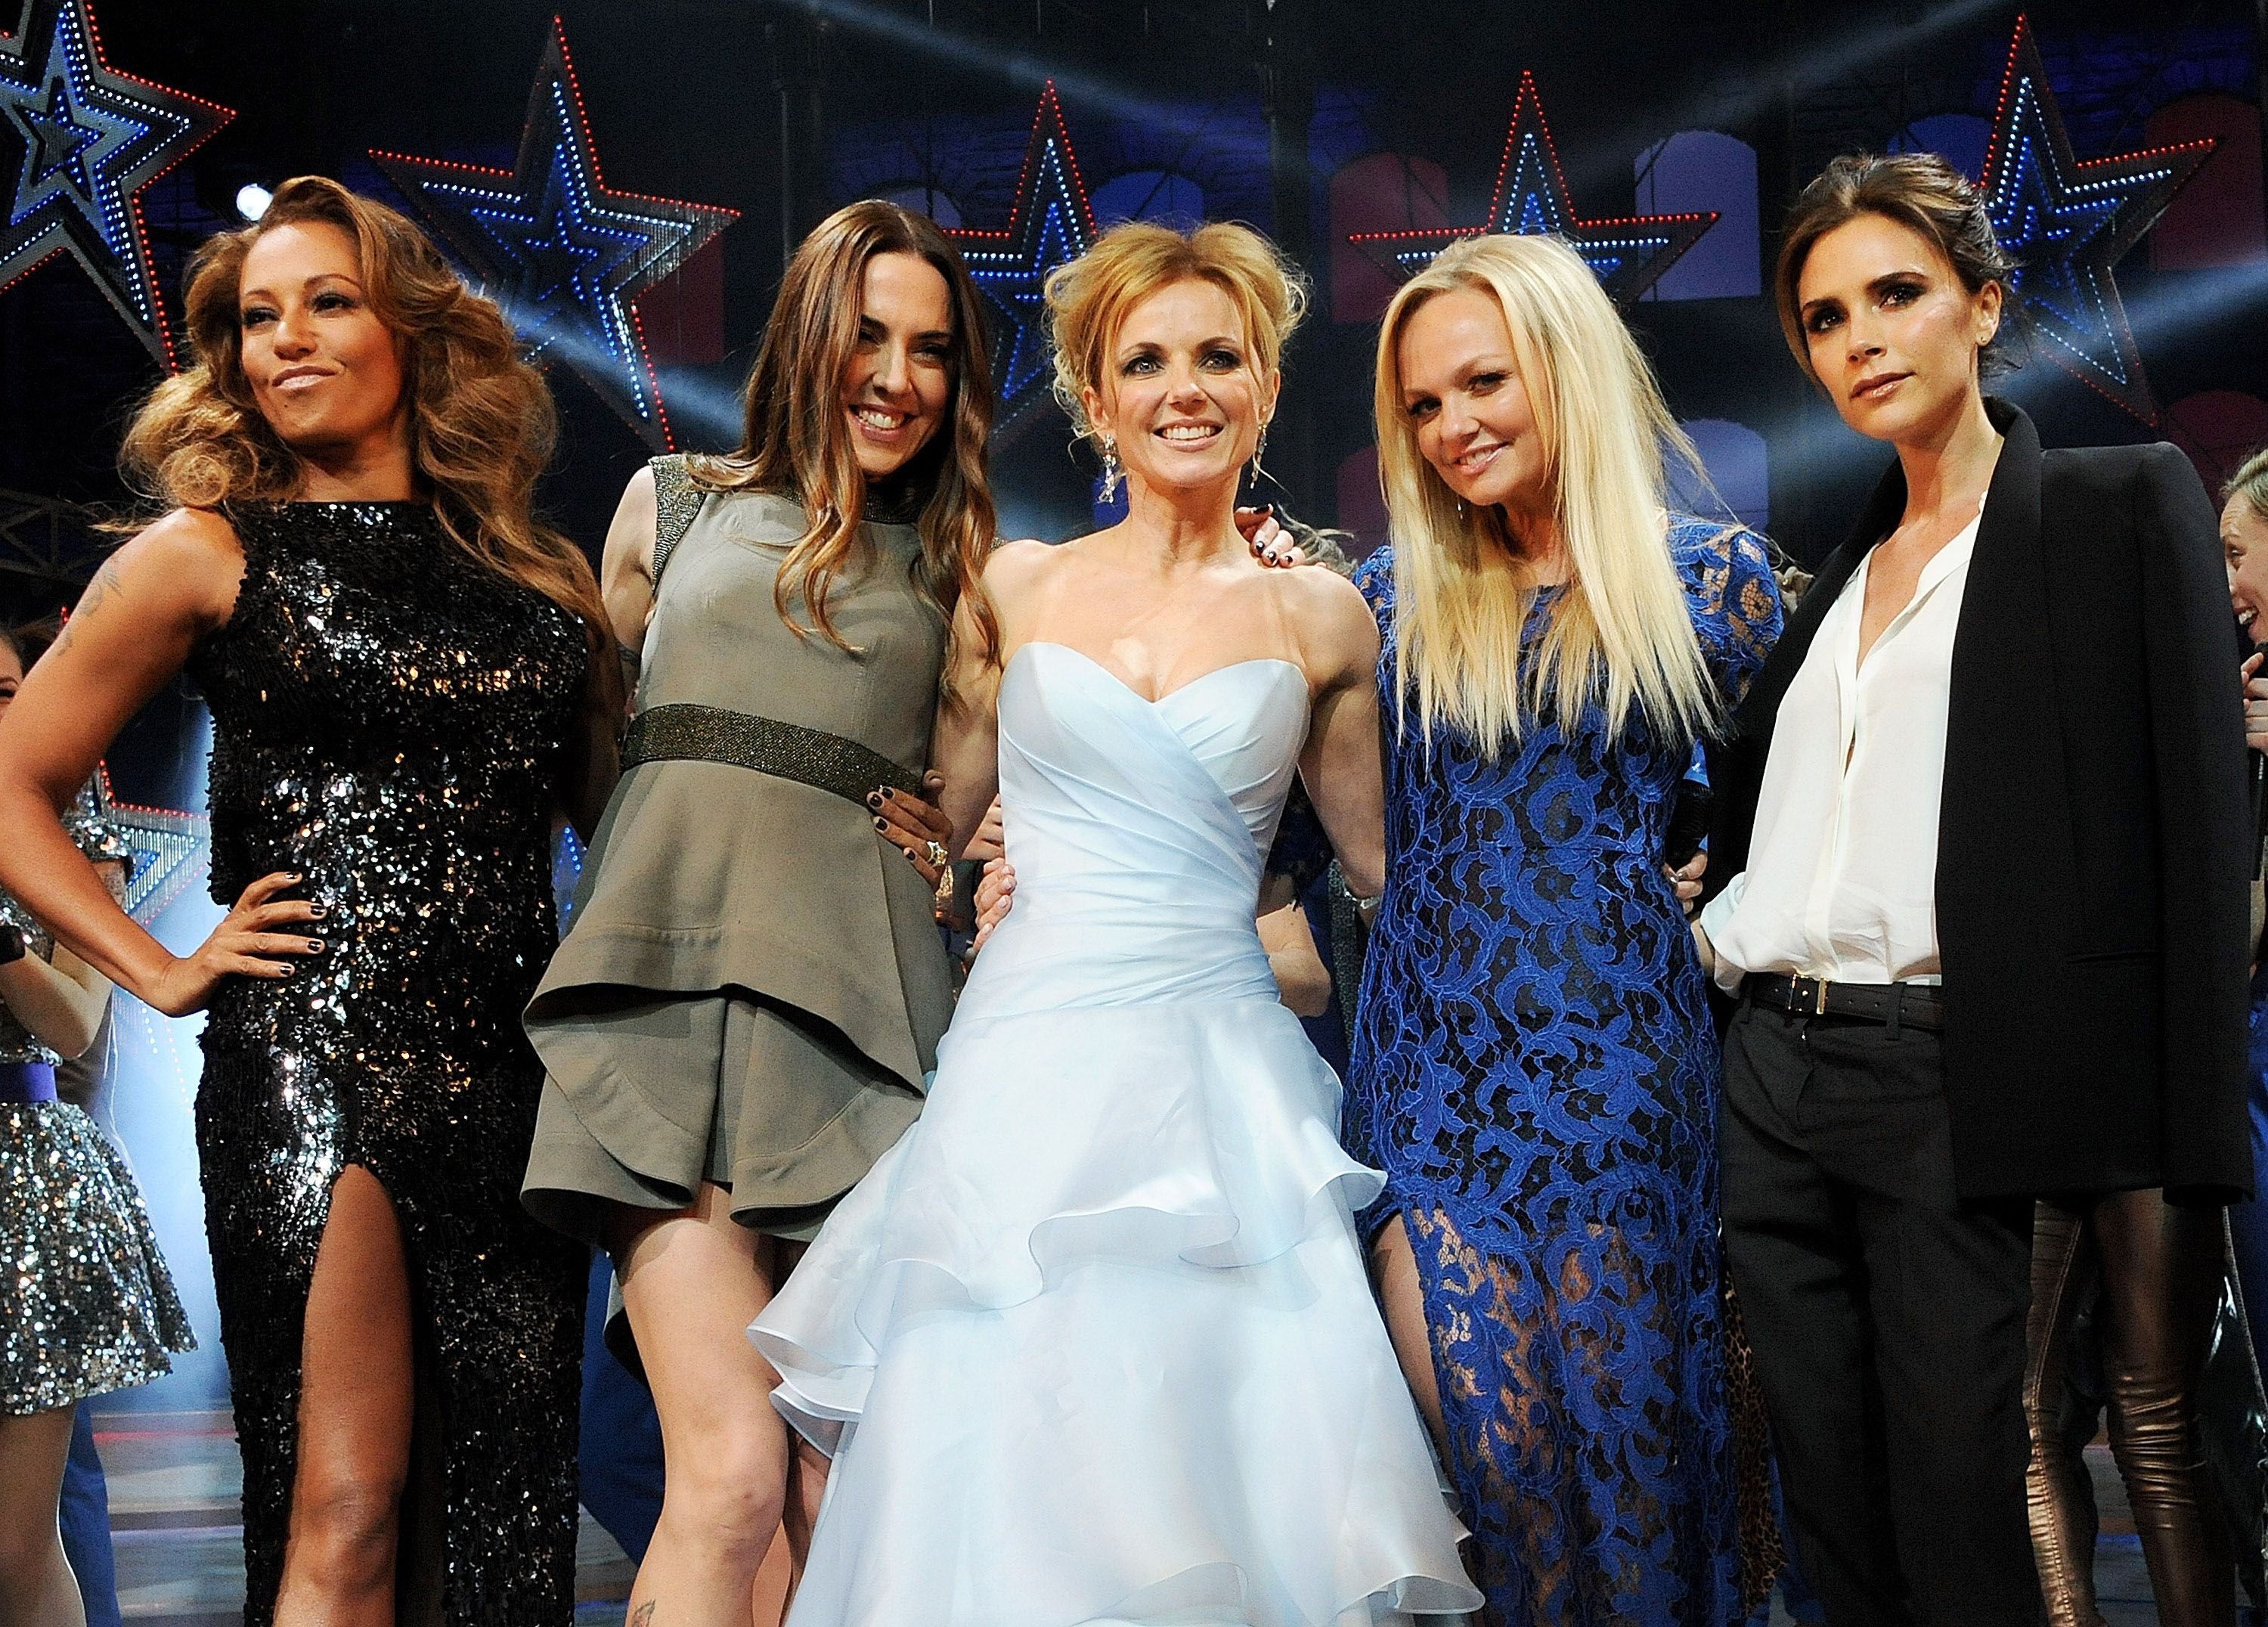 The Spice Girls are reportedly reuniting for TV special and album in 2018